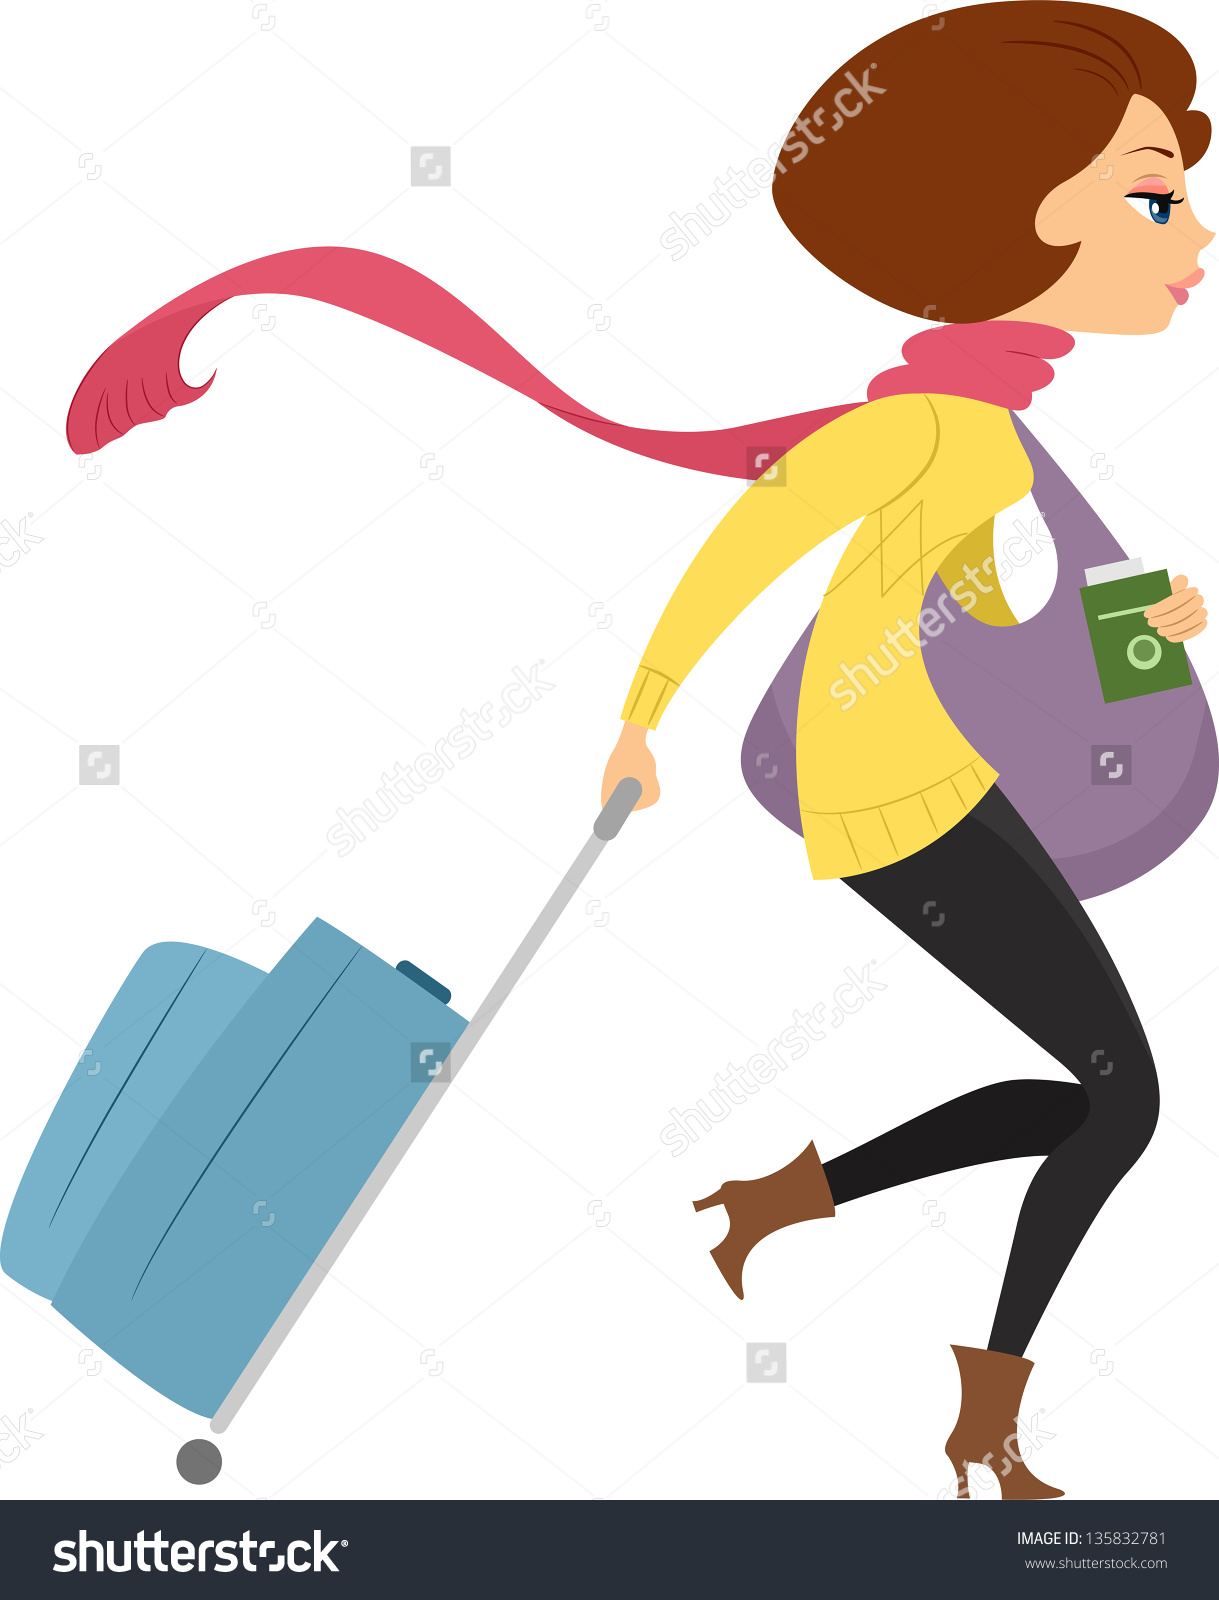 Girl showing id clipart clip art transparent download Illustration Showing Sideview Of A Girl Traveling On Winter ... clip art transparent download